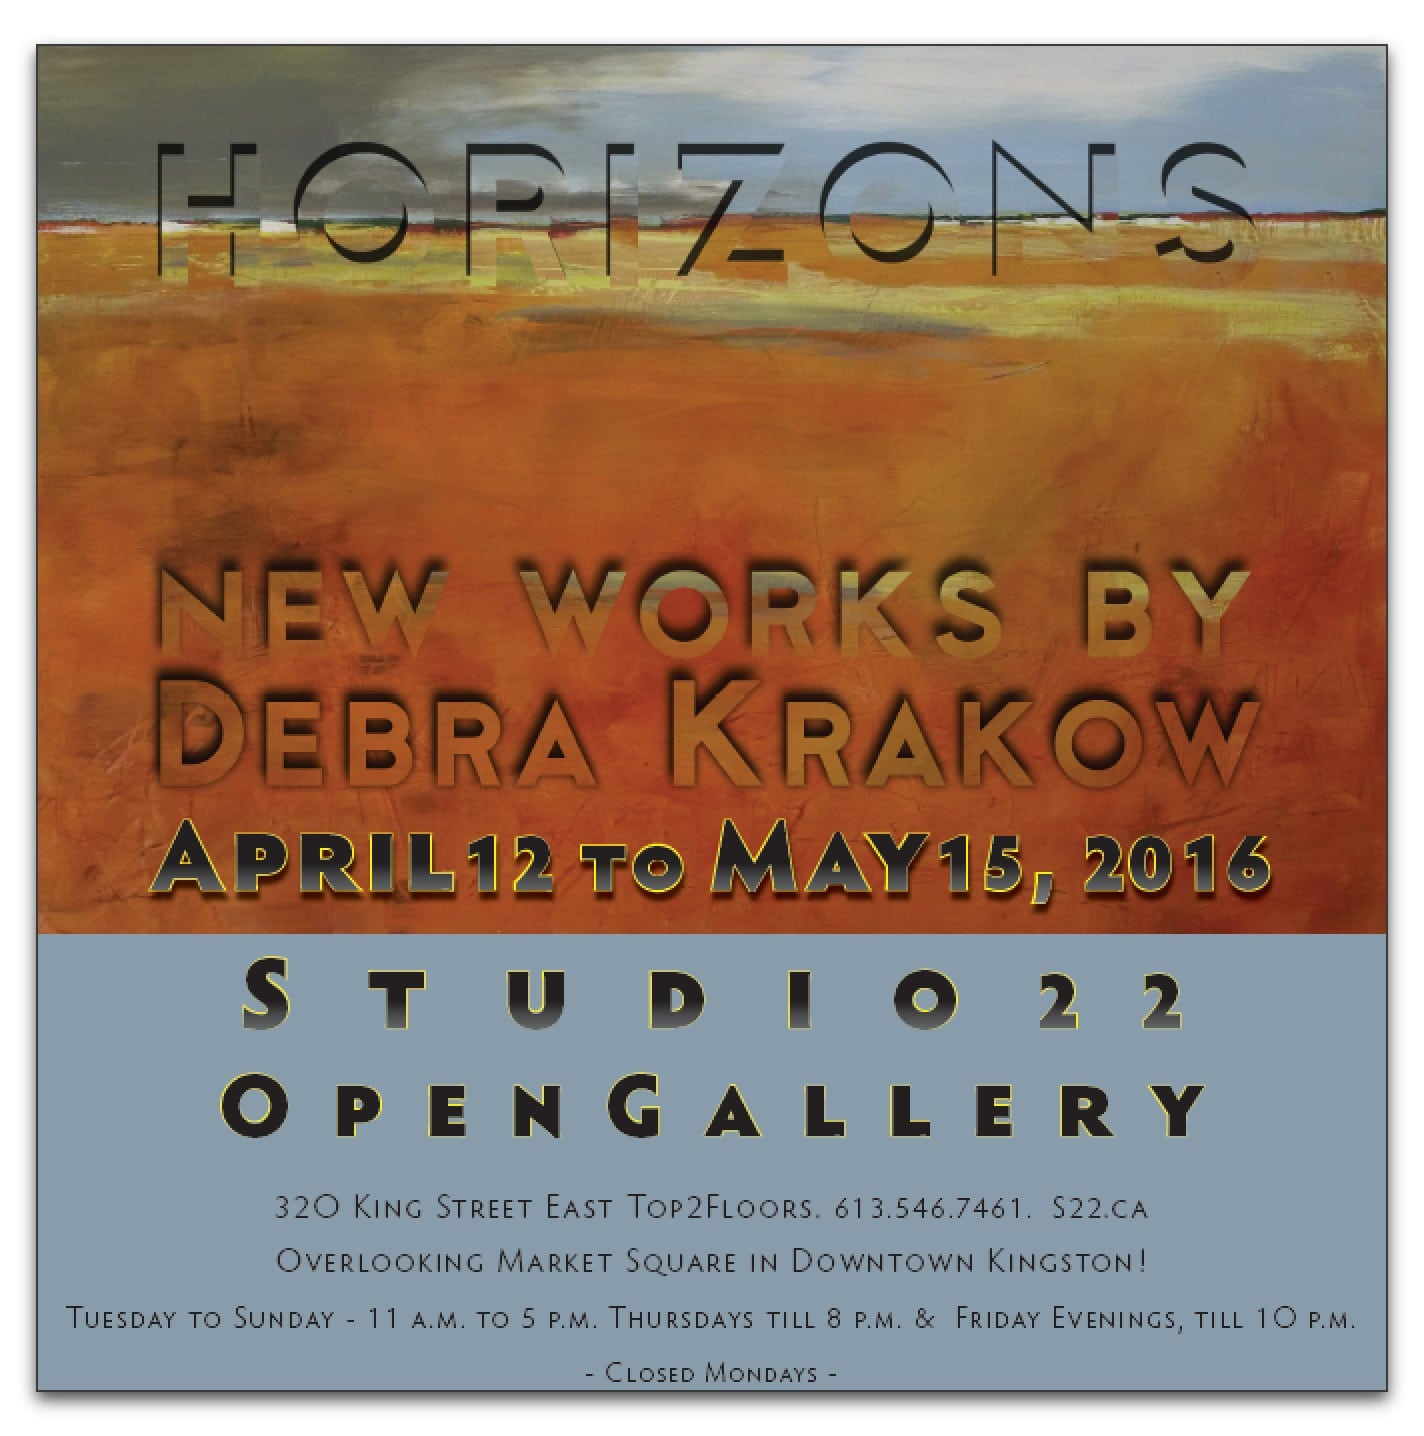 HORIZONS – New Works by Debra Krakow